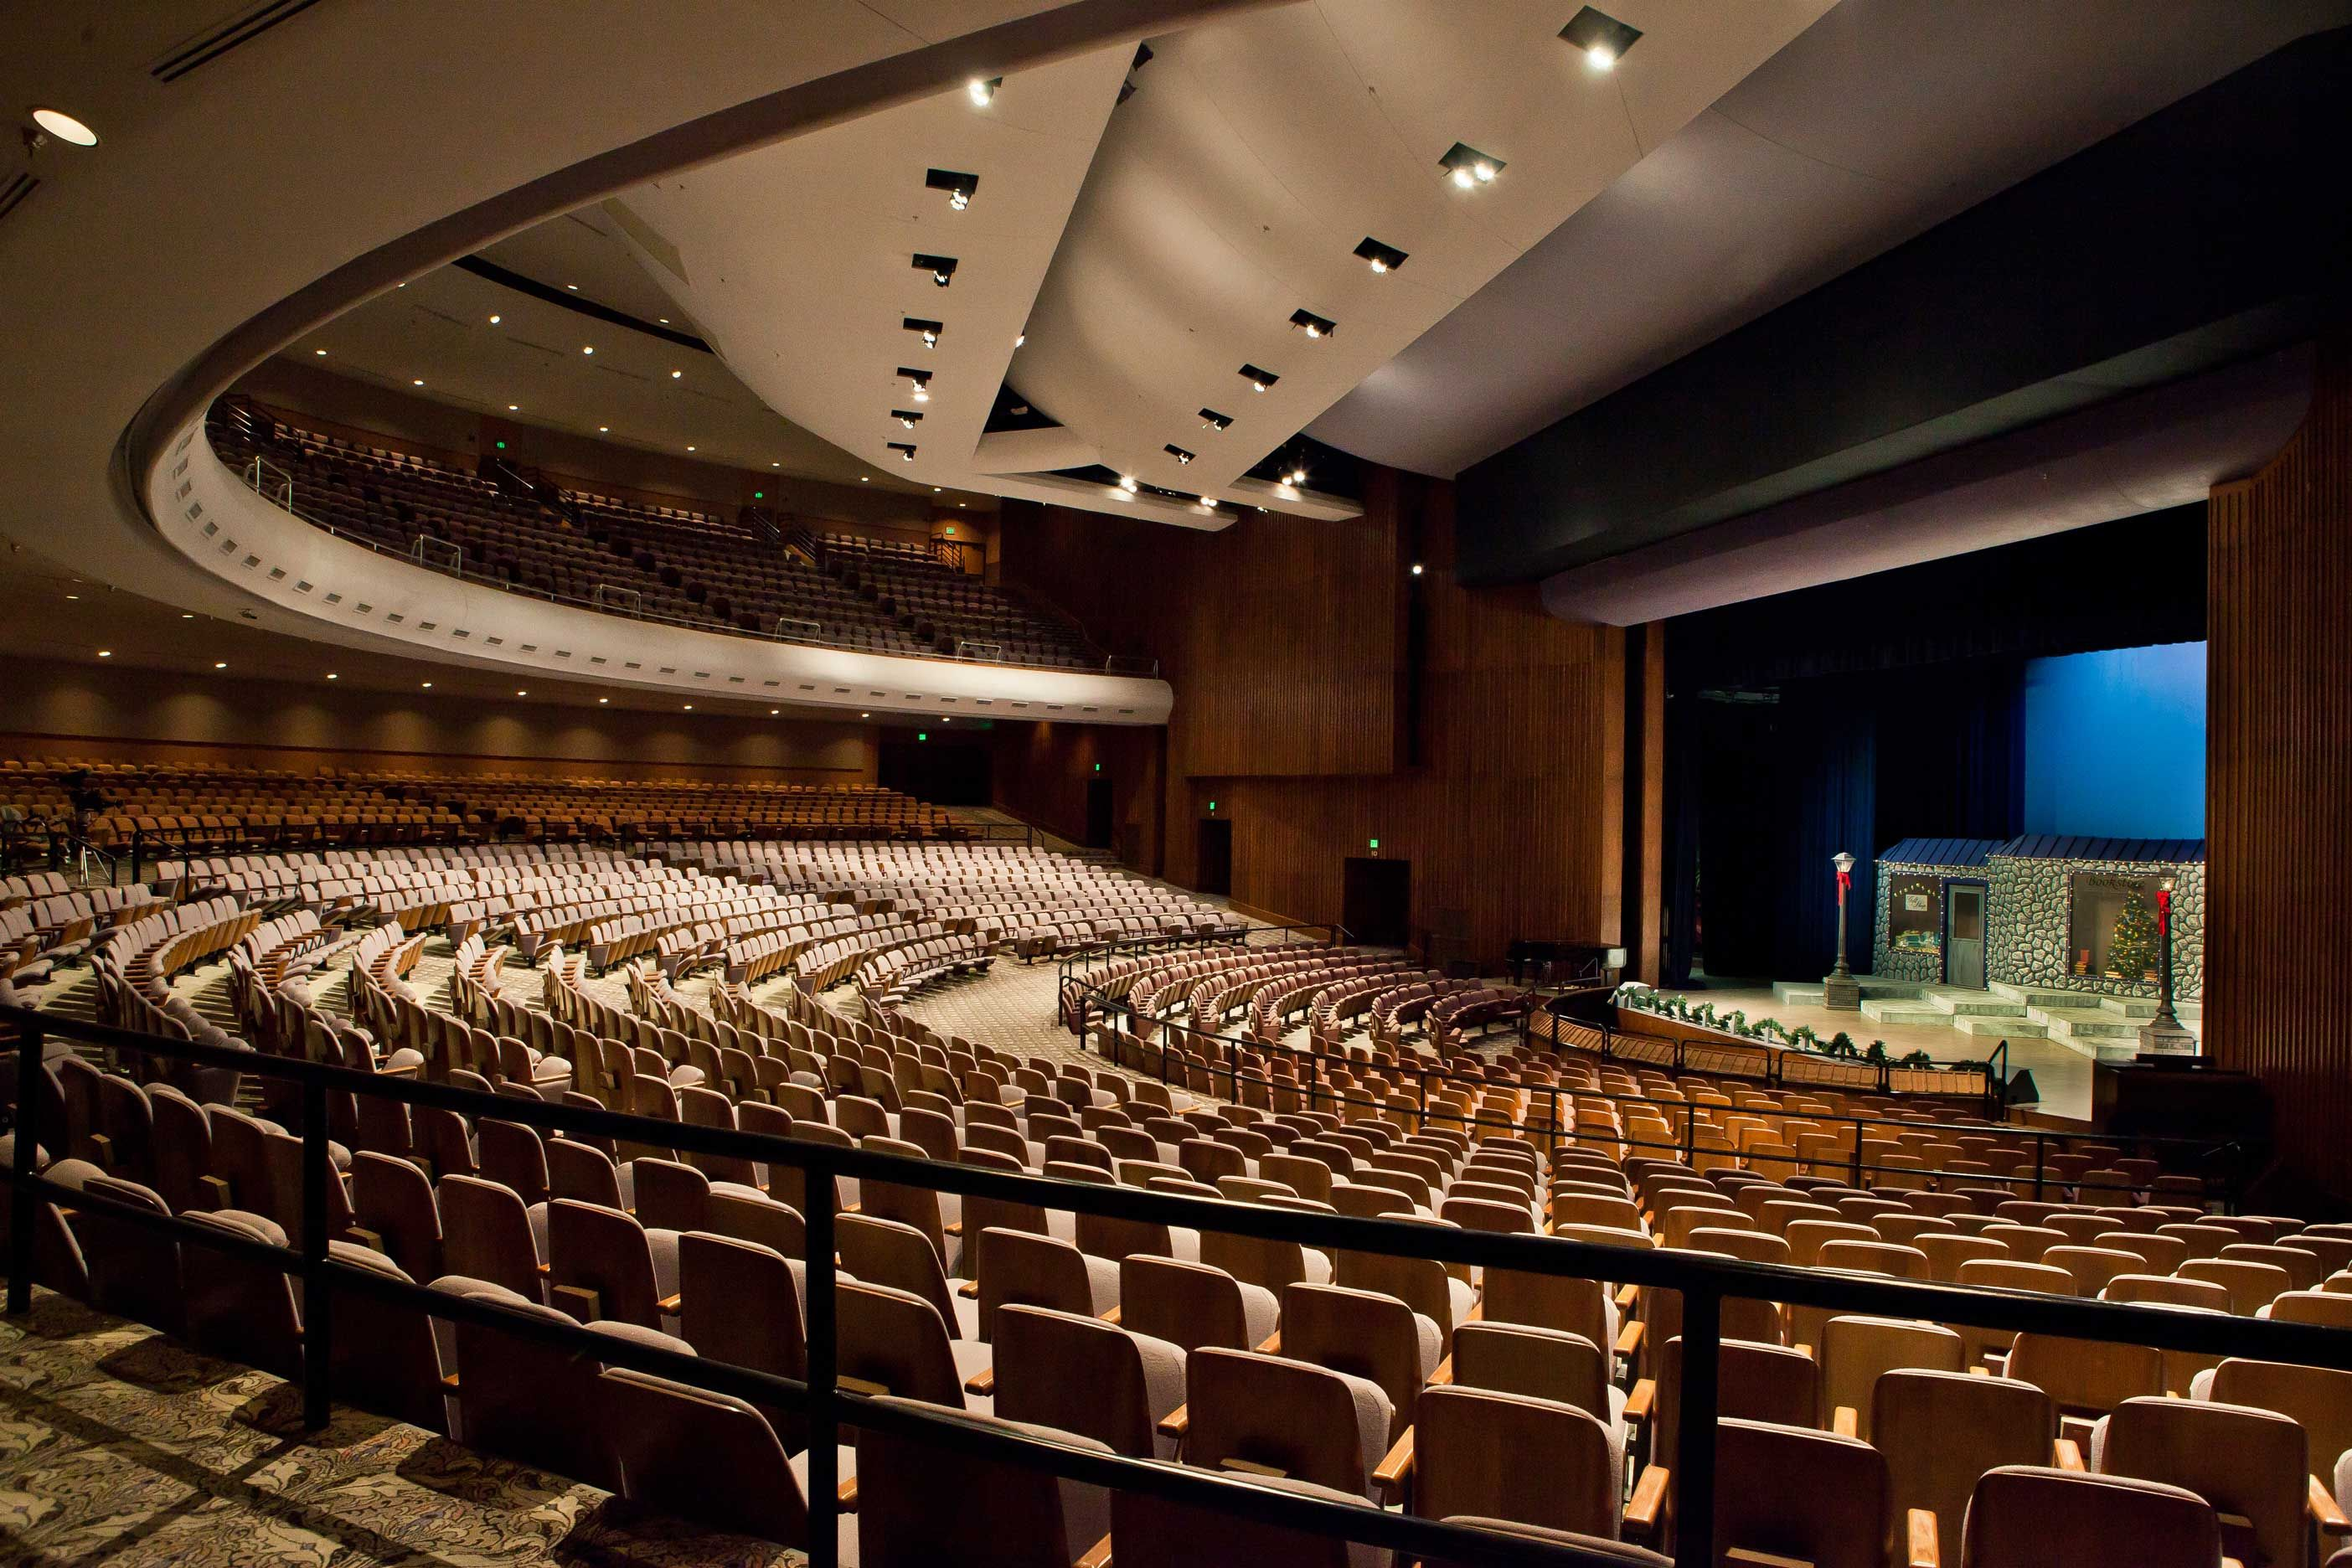 Auditorium Design Standards Google Search Theater